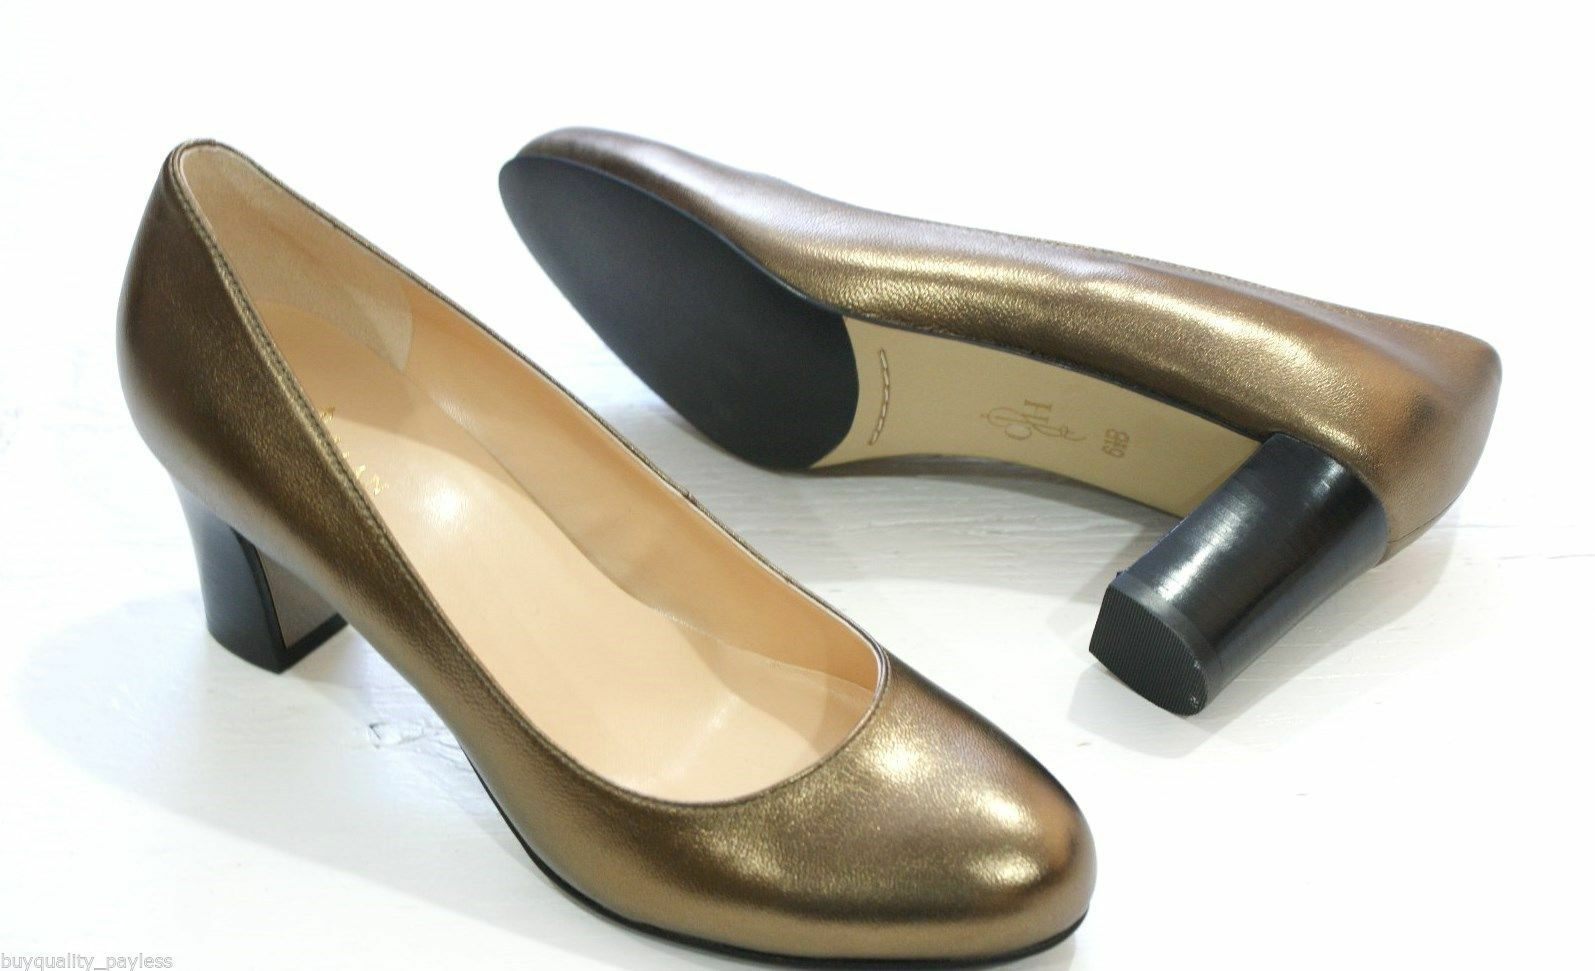 Cole Haan Women's Edie Low Pump gold Metallic Dress shoes shoes shoes 7 NEW IN BOX 3a2dc7